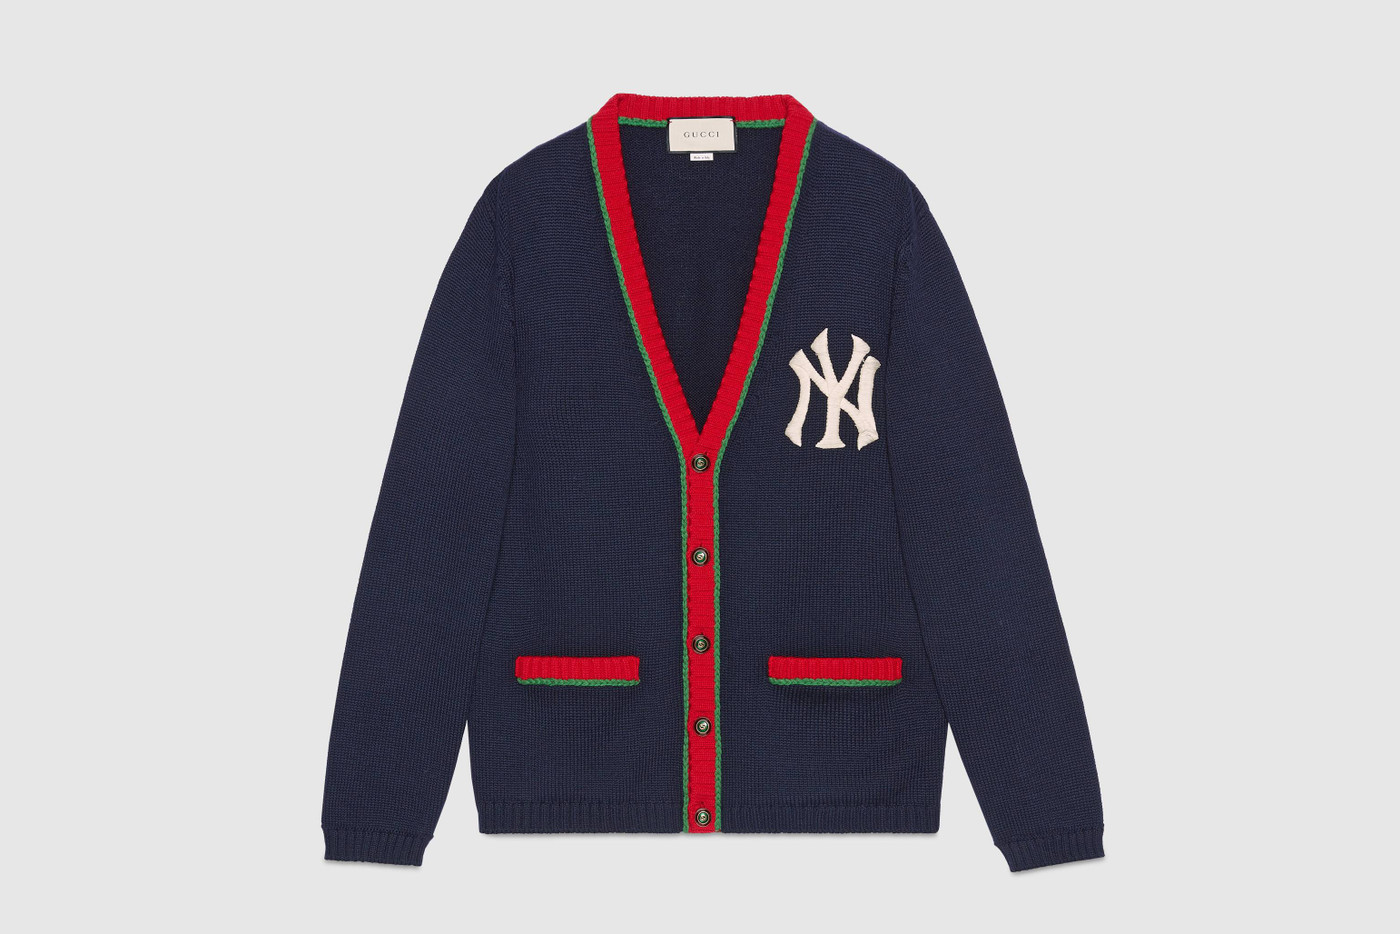 yankees-gucci-apparel-9